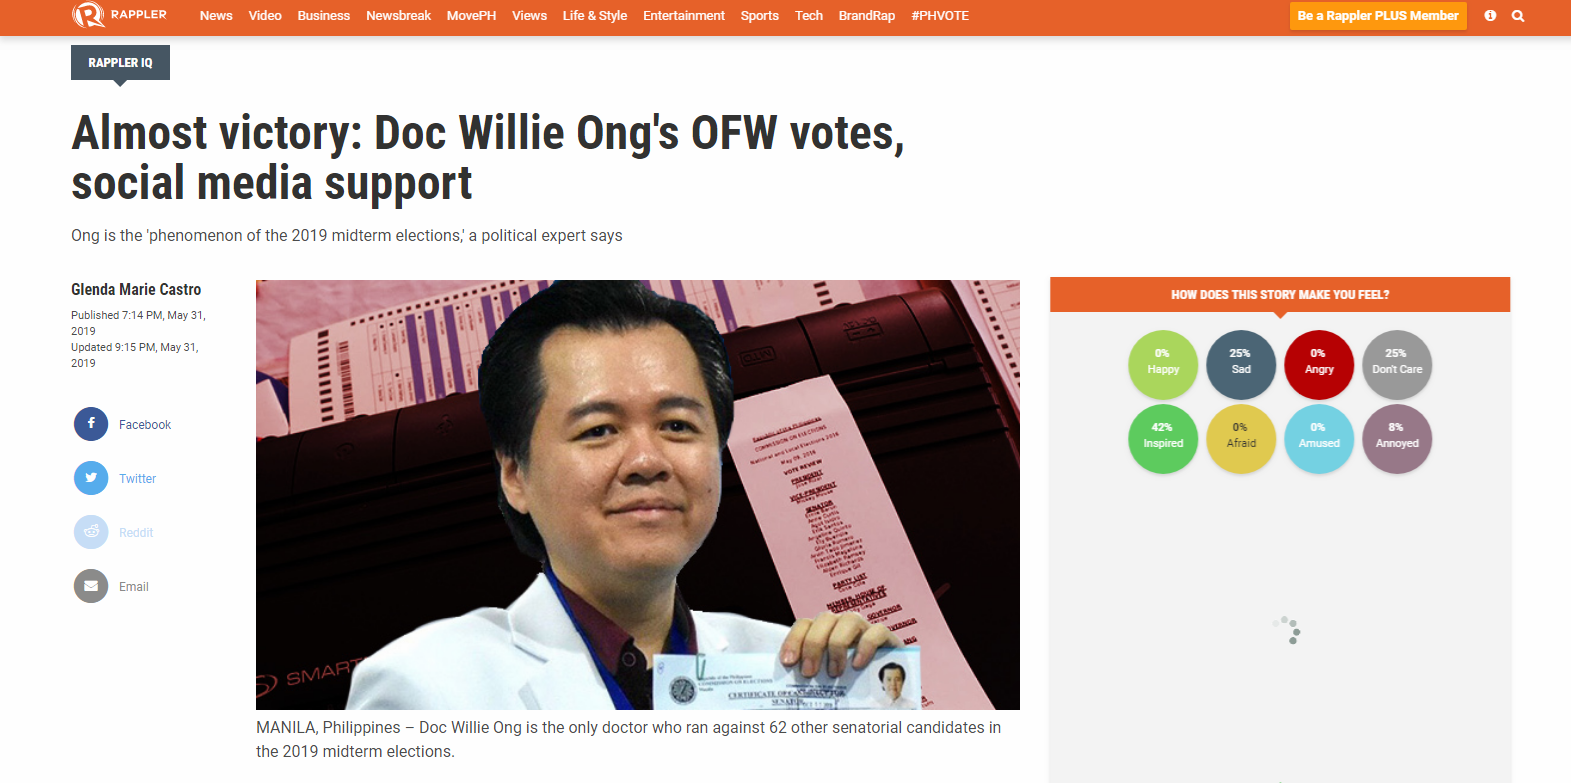 Almost victory: Doc Willie Ong's OFW votes, social media support